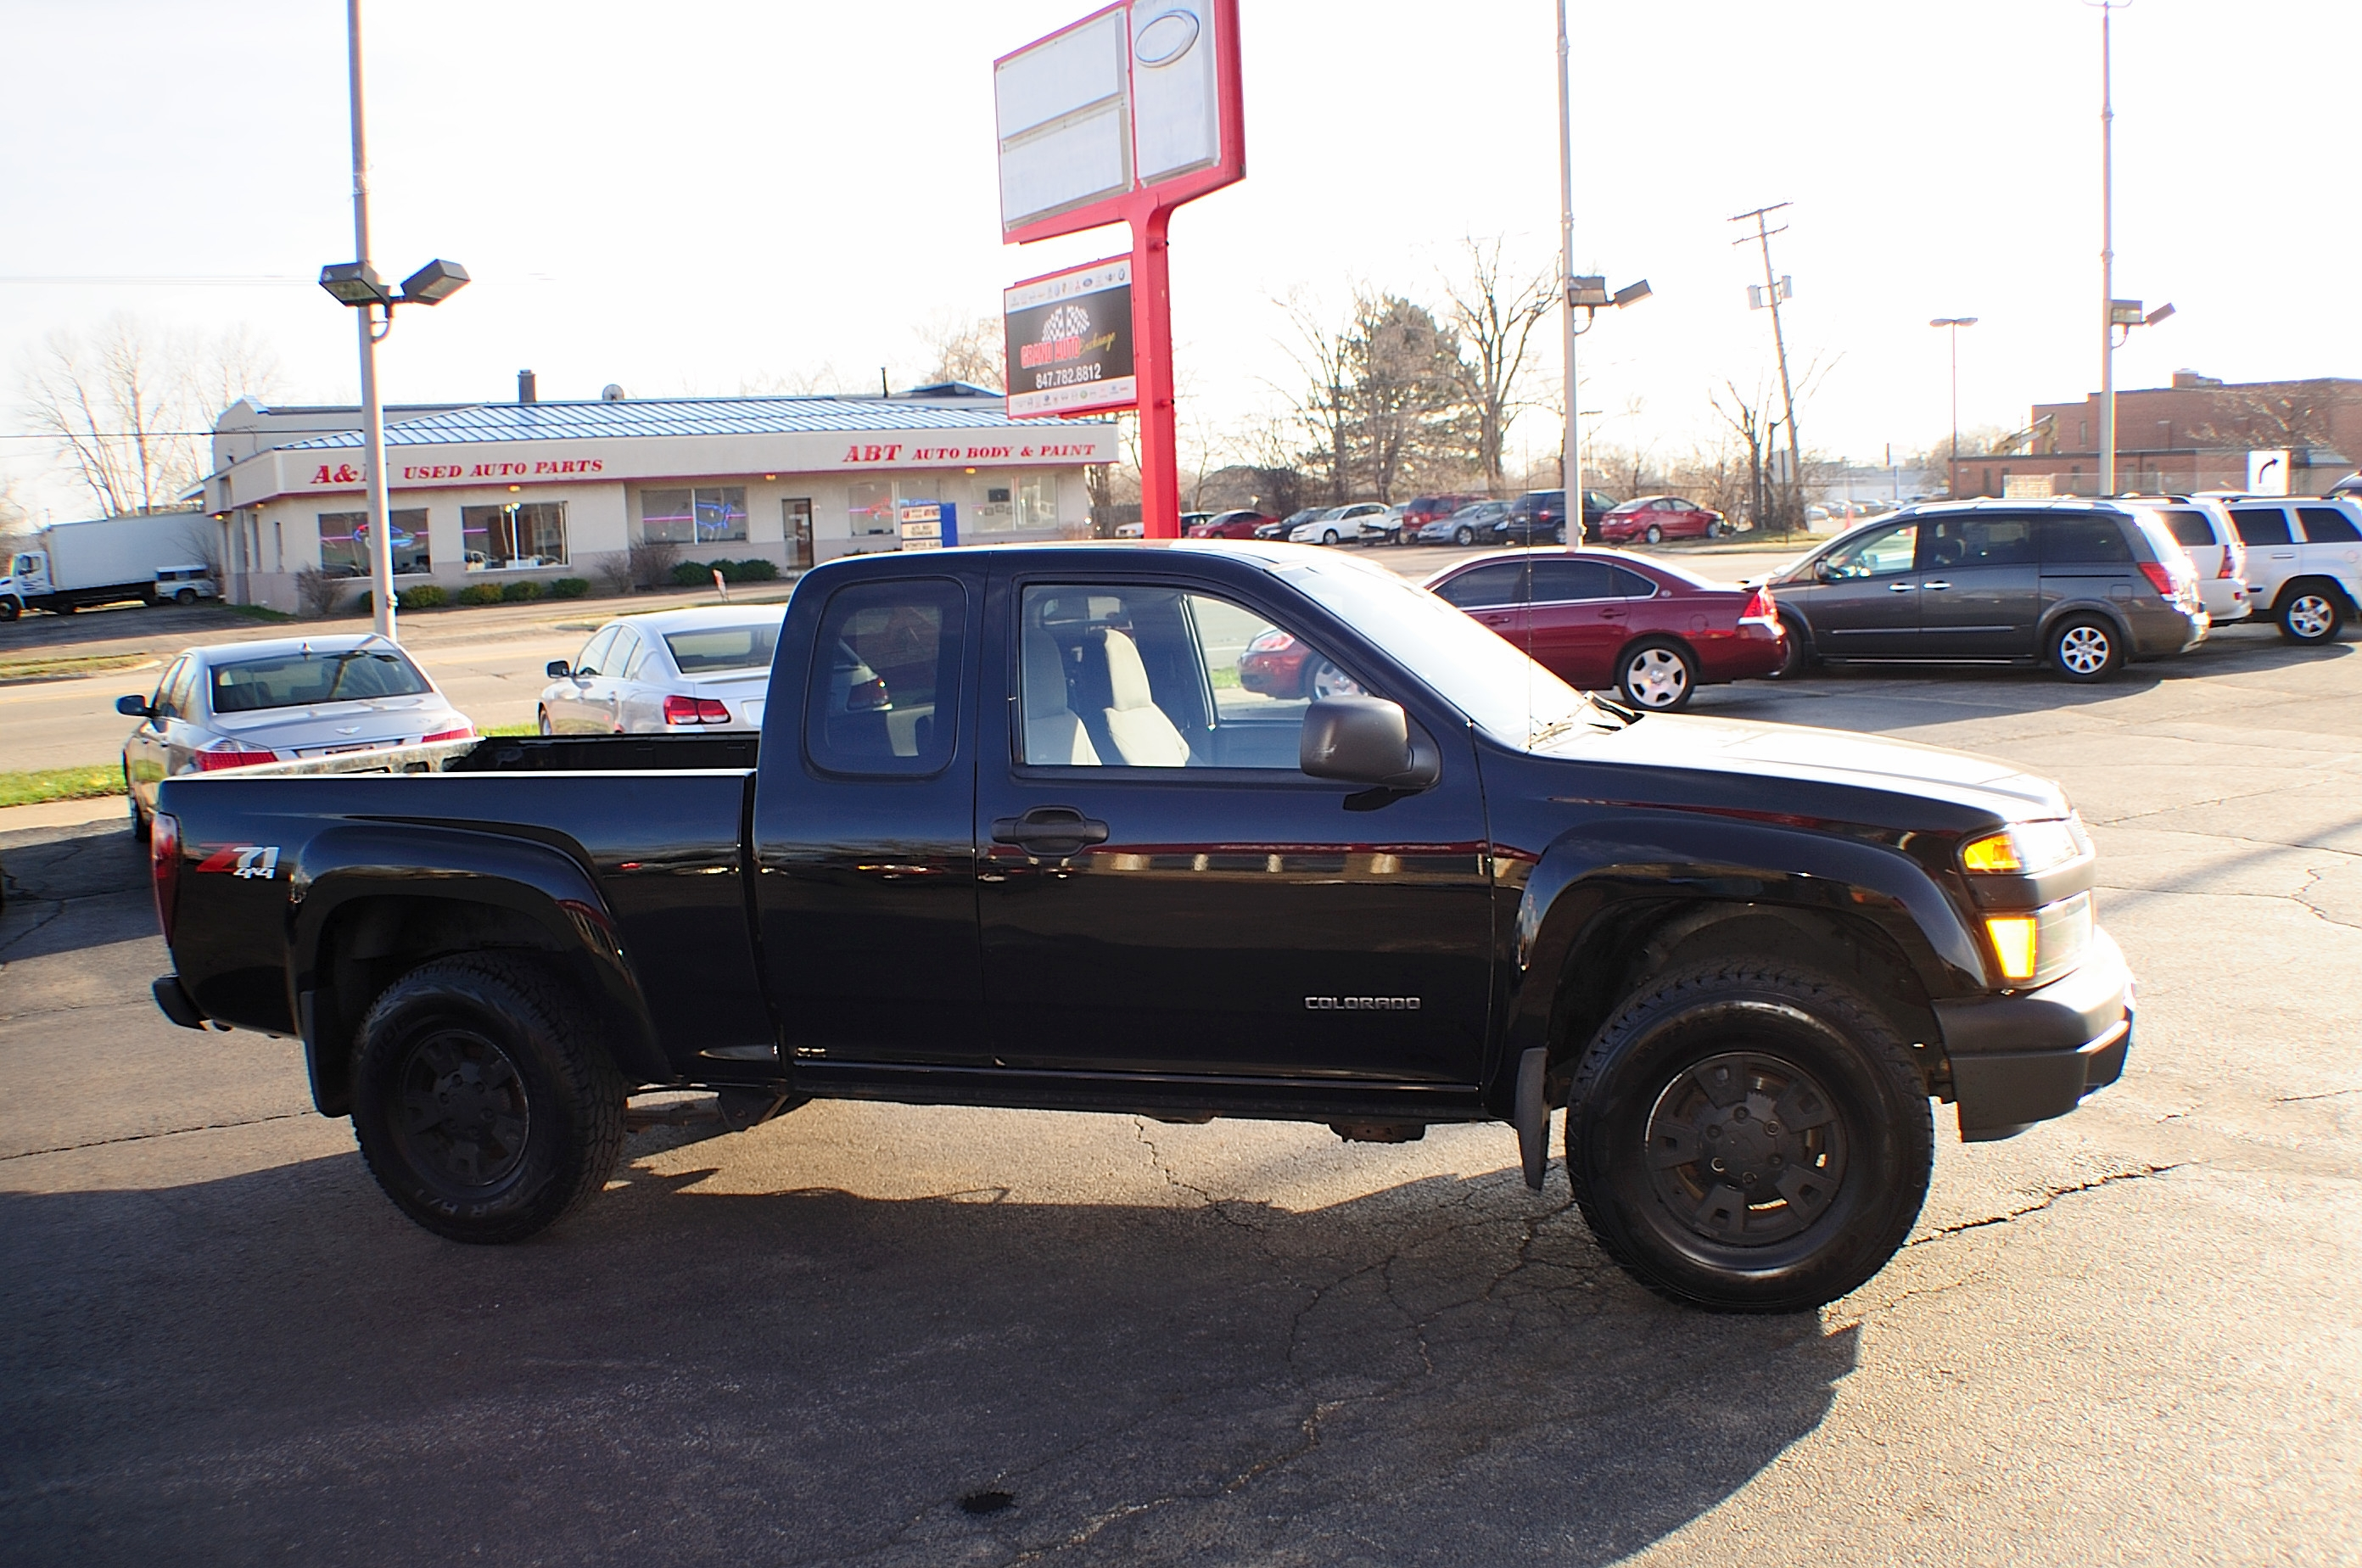 2005 chevrolet colorado black z71 4x4 pickup truck